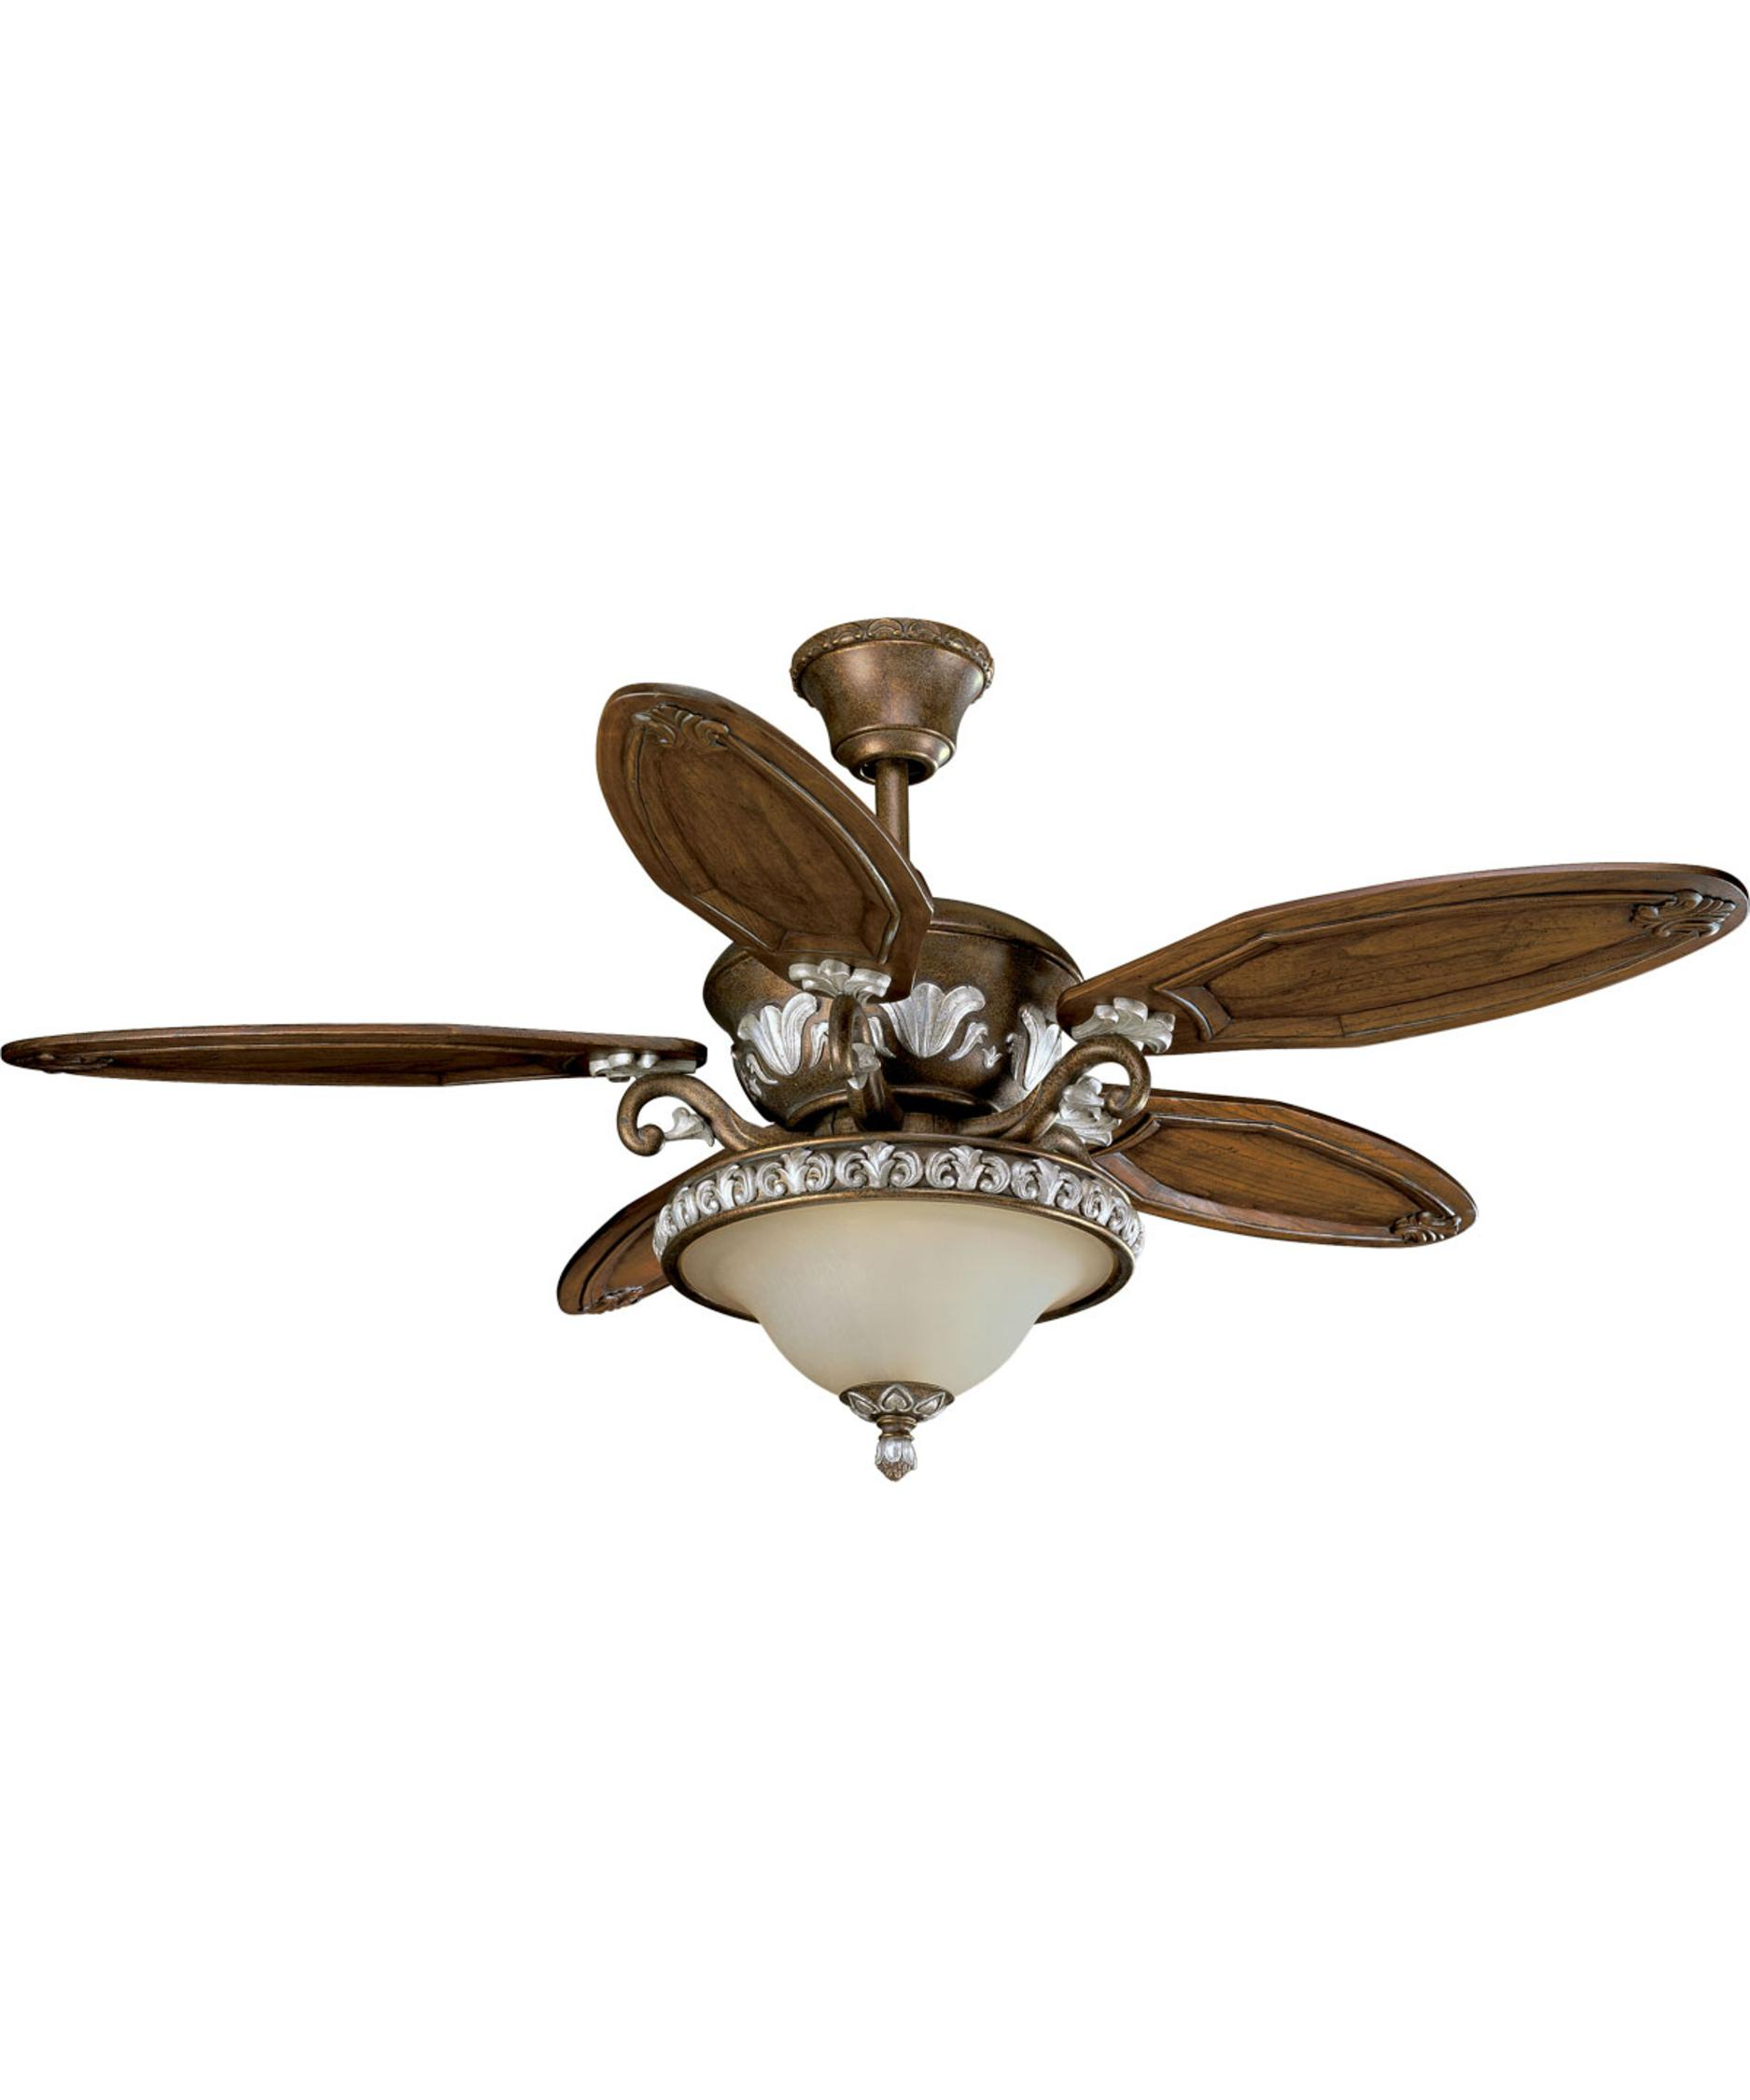 Thomasville lighting p2505 carmel 54 inch ceiling fan with for Thomasville lights